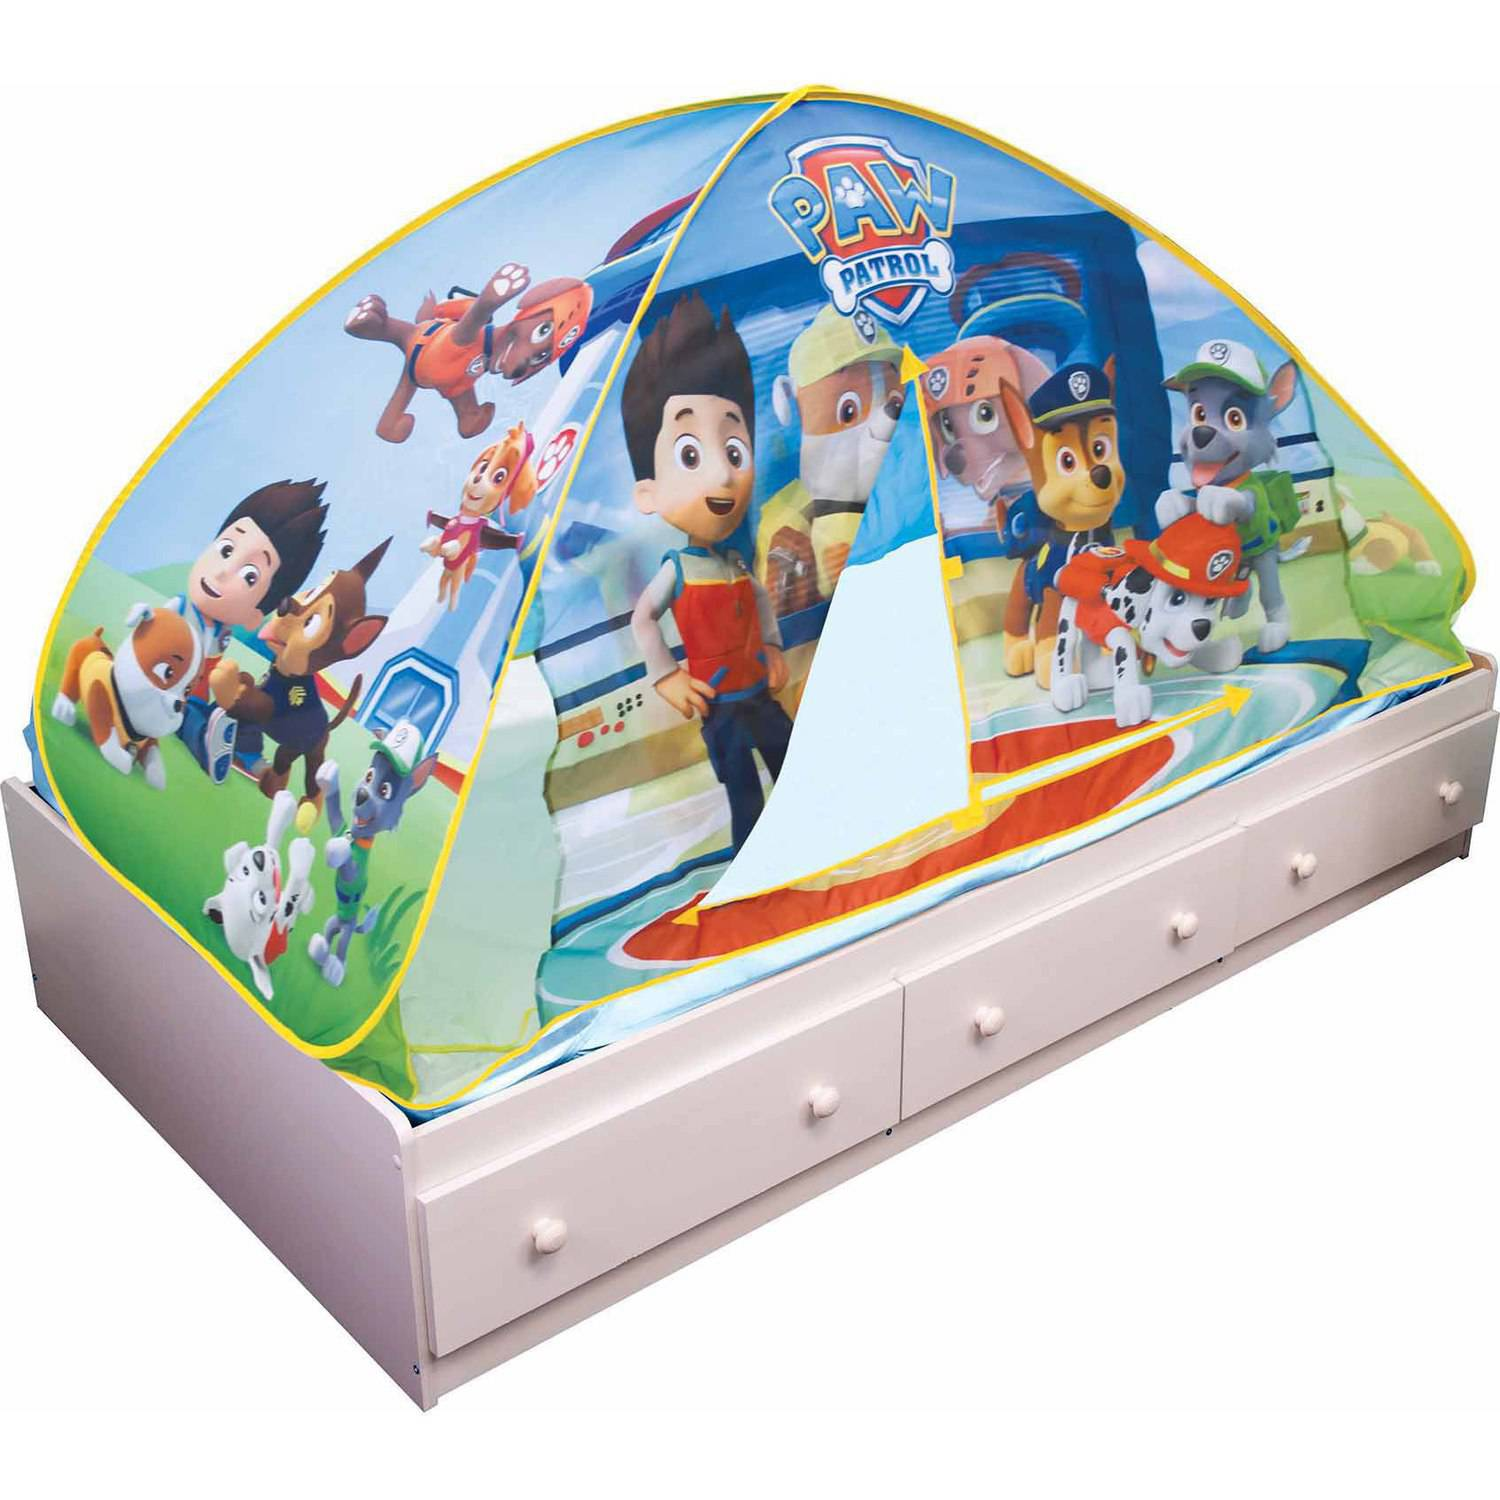 Playhut Nickelodeon Paw Patrol 2-in-1 Tent